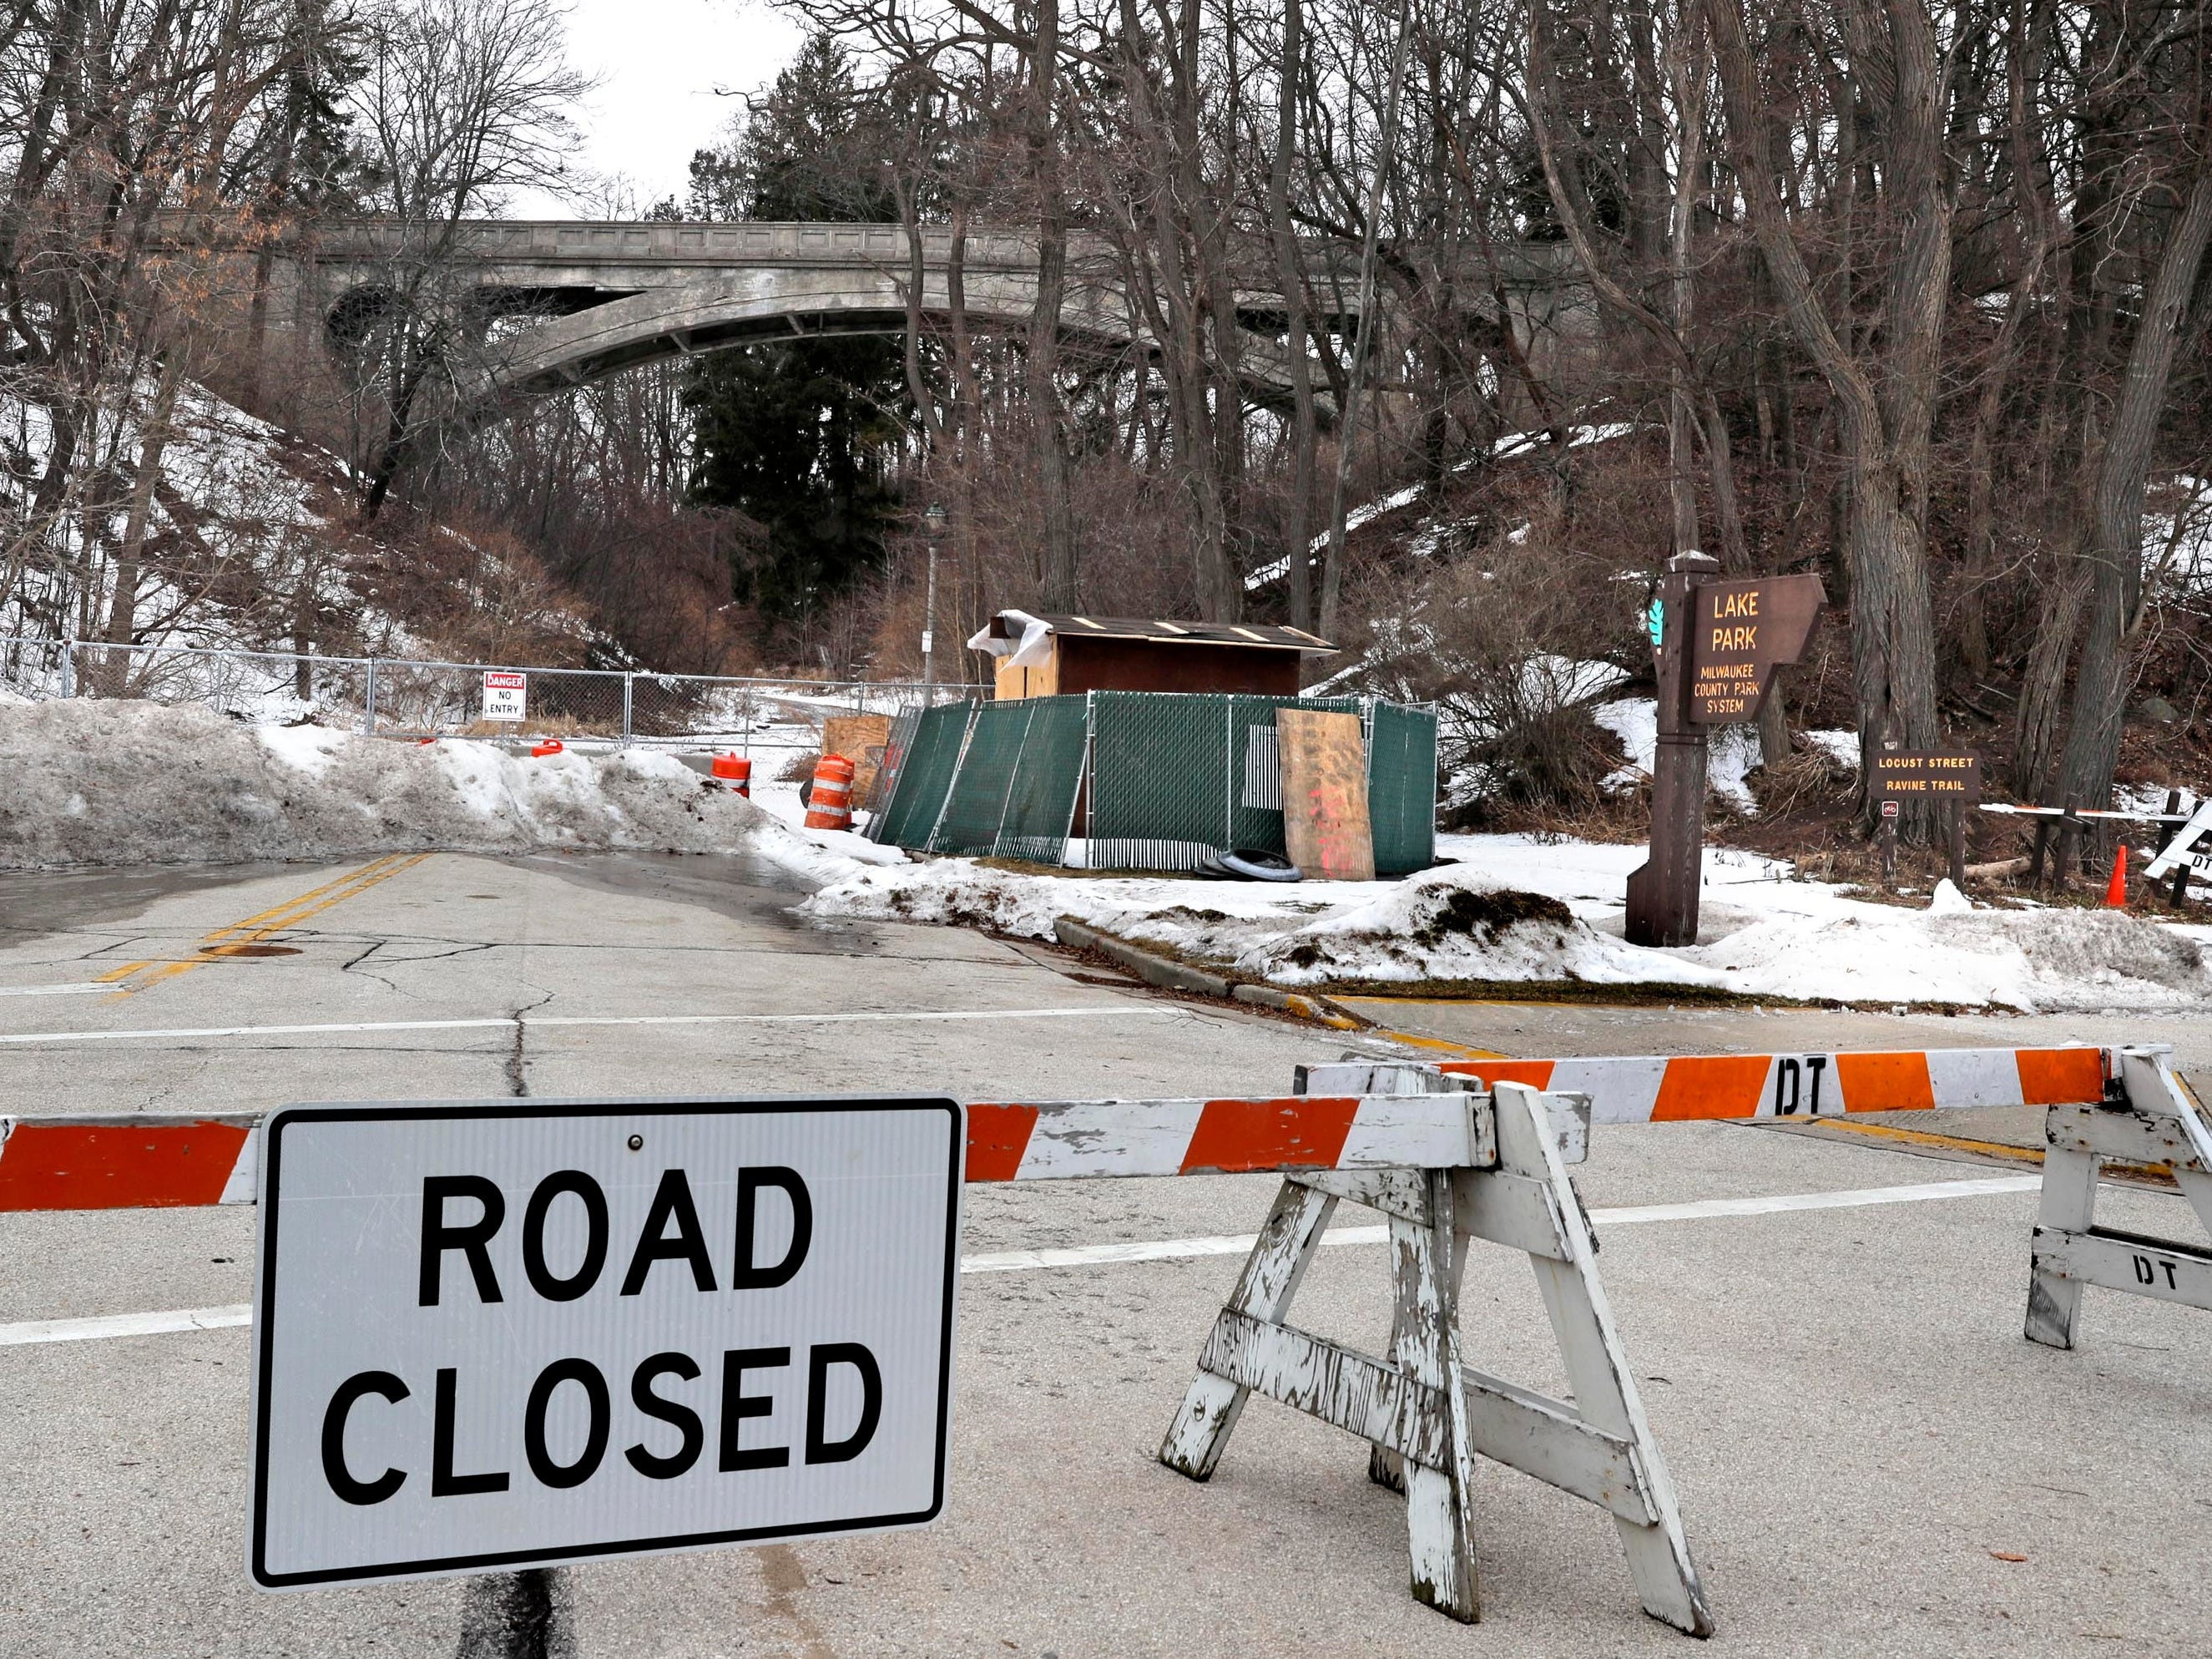 Ravine Road from Lincoln Memorial Drive to Lake Park has been closed since 2014 because of unsafe conditions on the footbridge spanning the road.